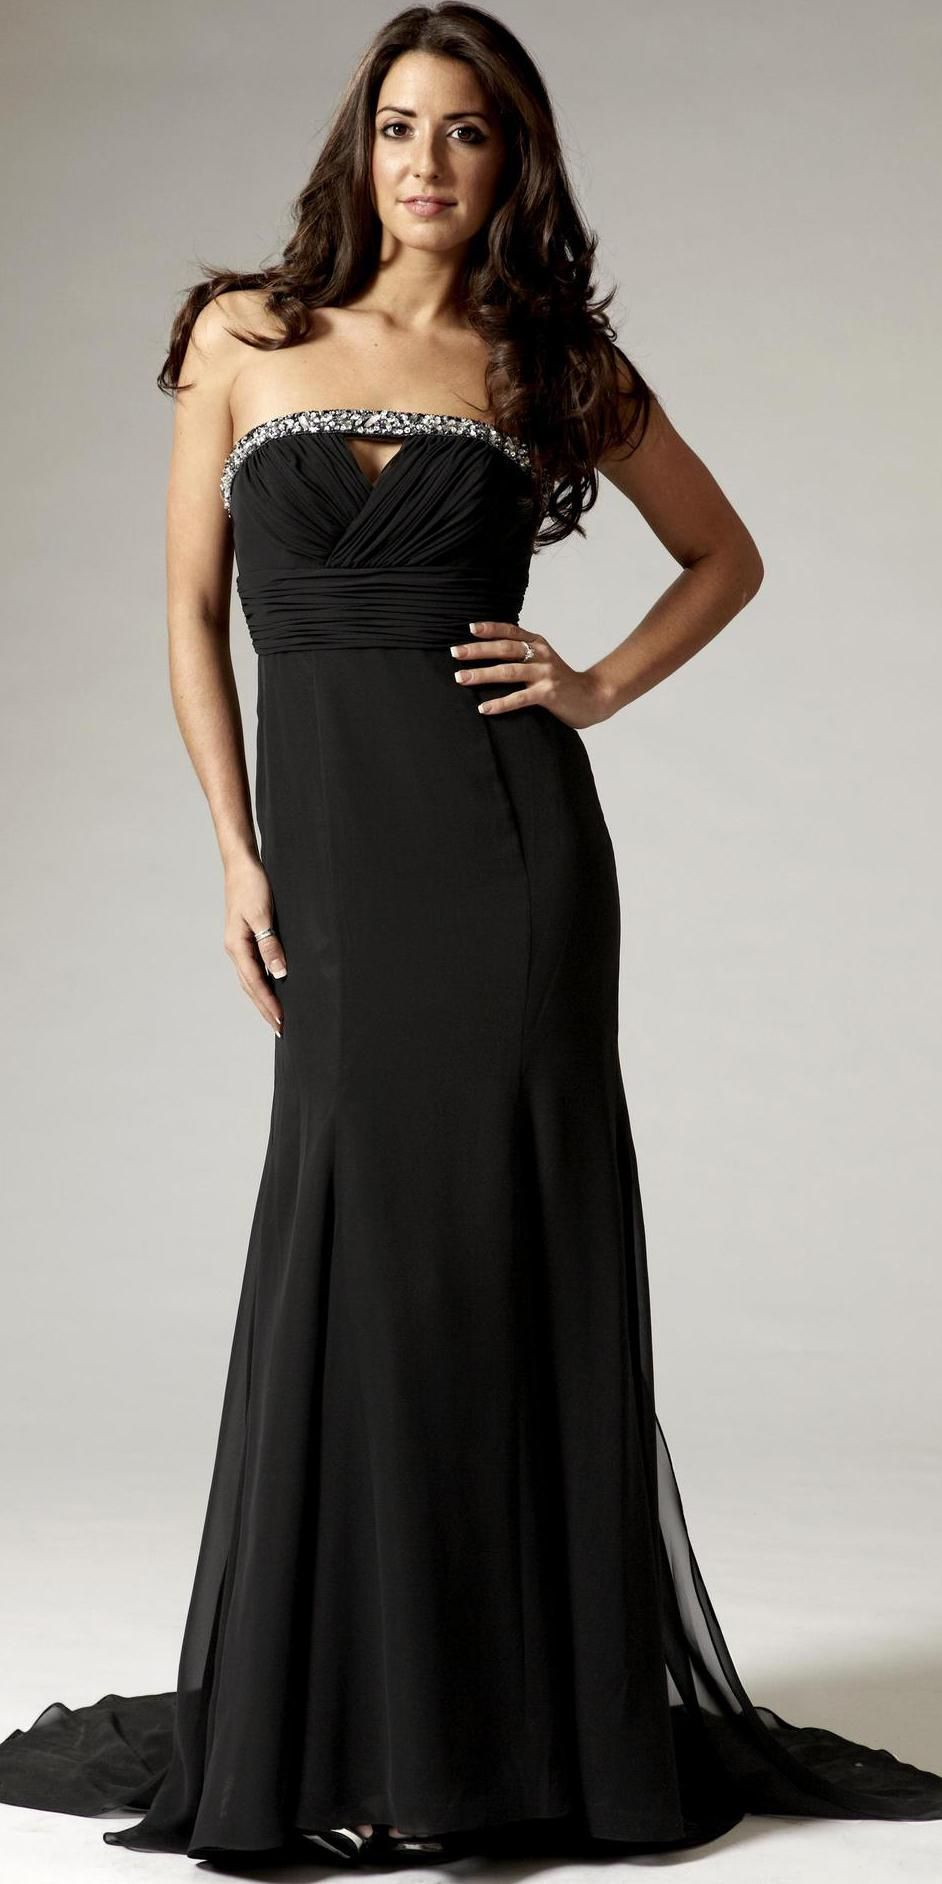 060cc39543f Elegant Long Black Evening Dresses